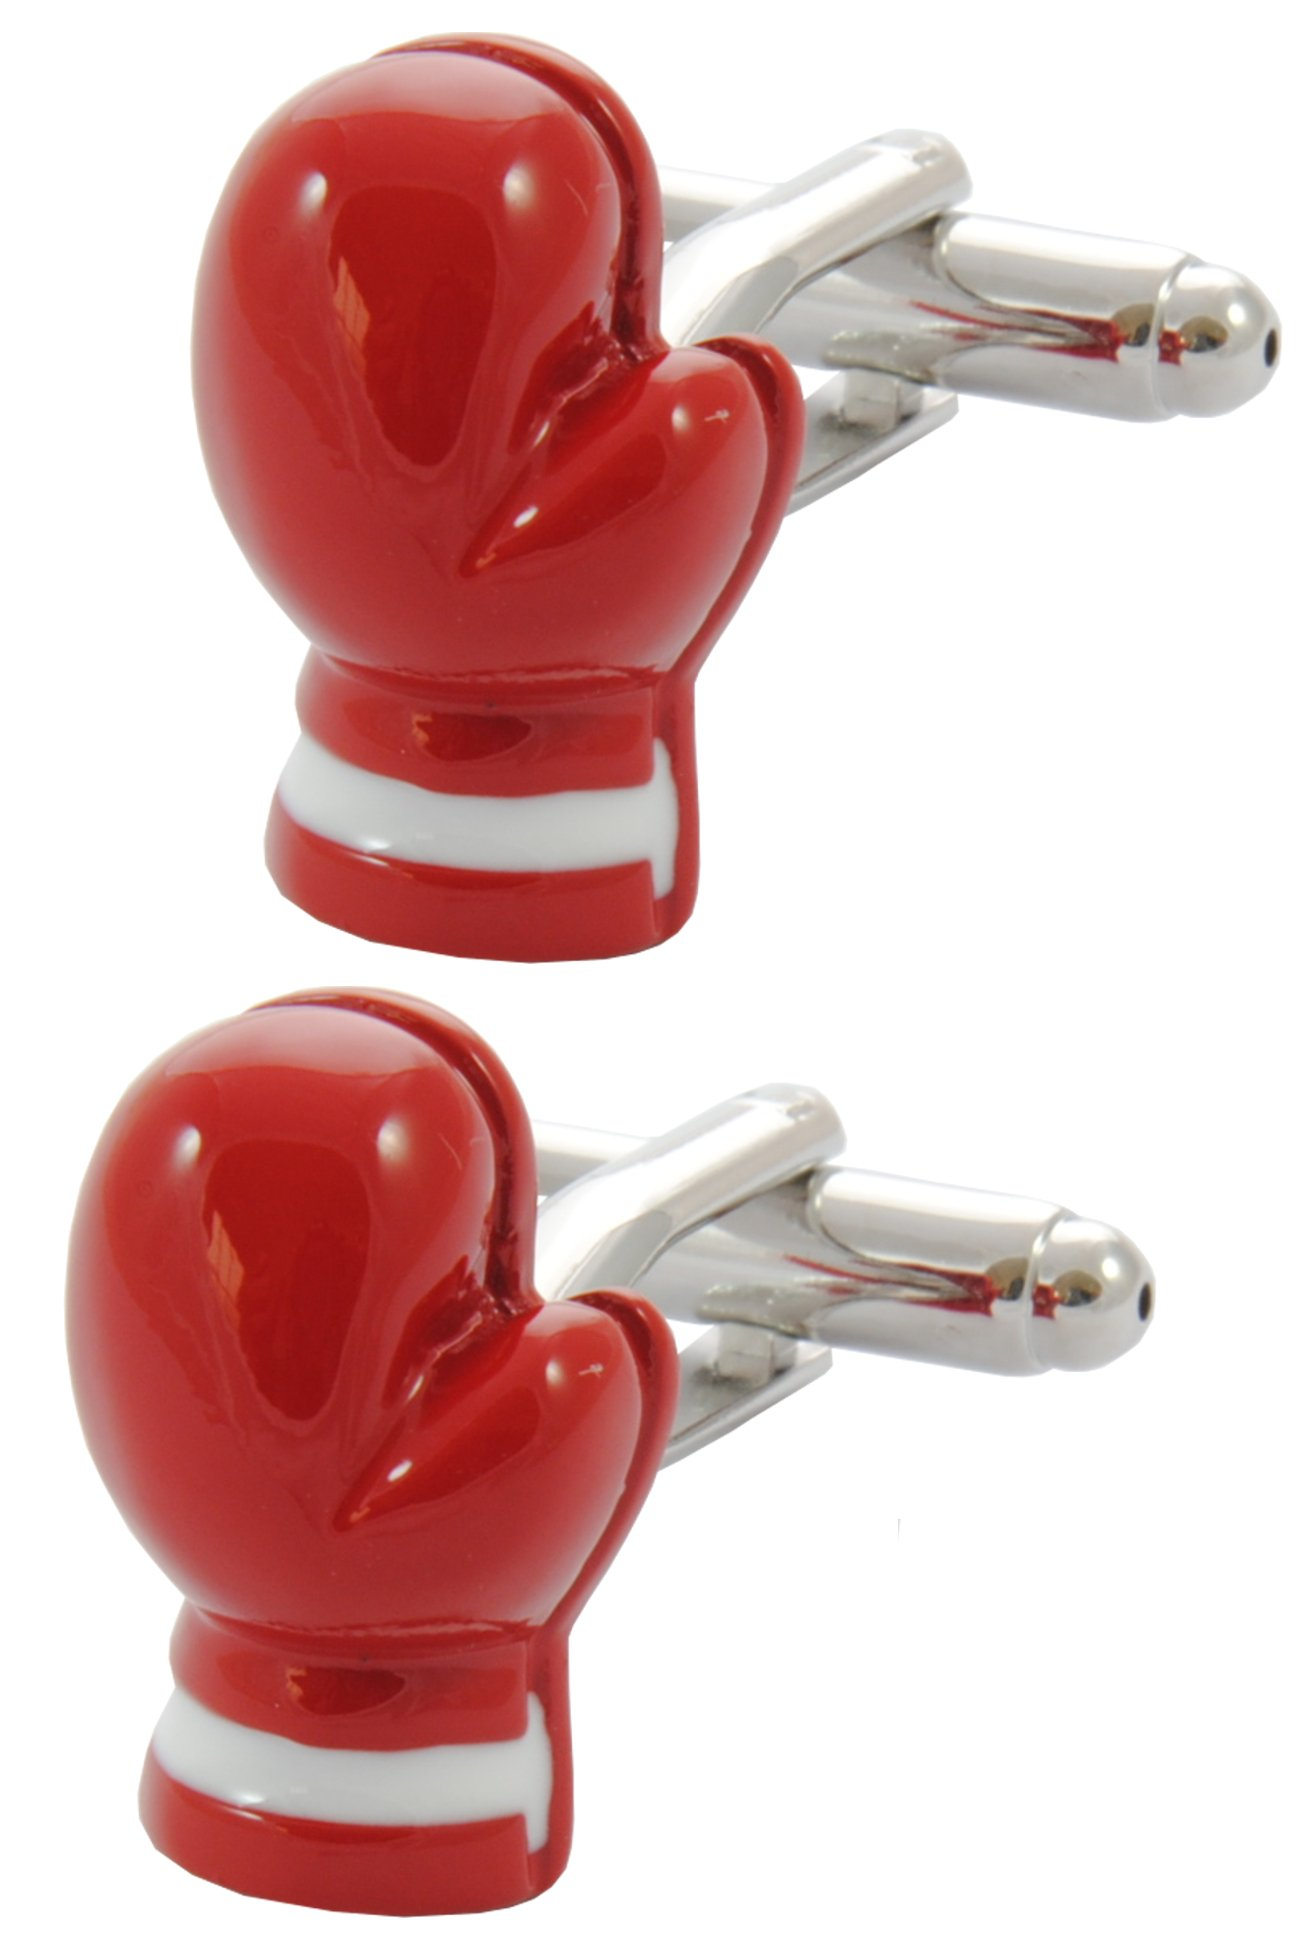 COLLAR AND CUFFS LONDON - Premium Cufflinks with Gift Box - Boxing Glove - Sport Ring Fight Referee Punch - Red Colour